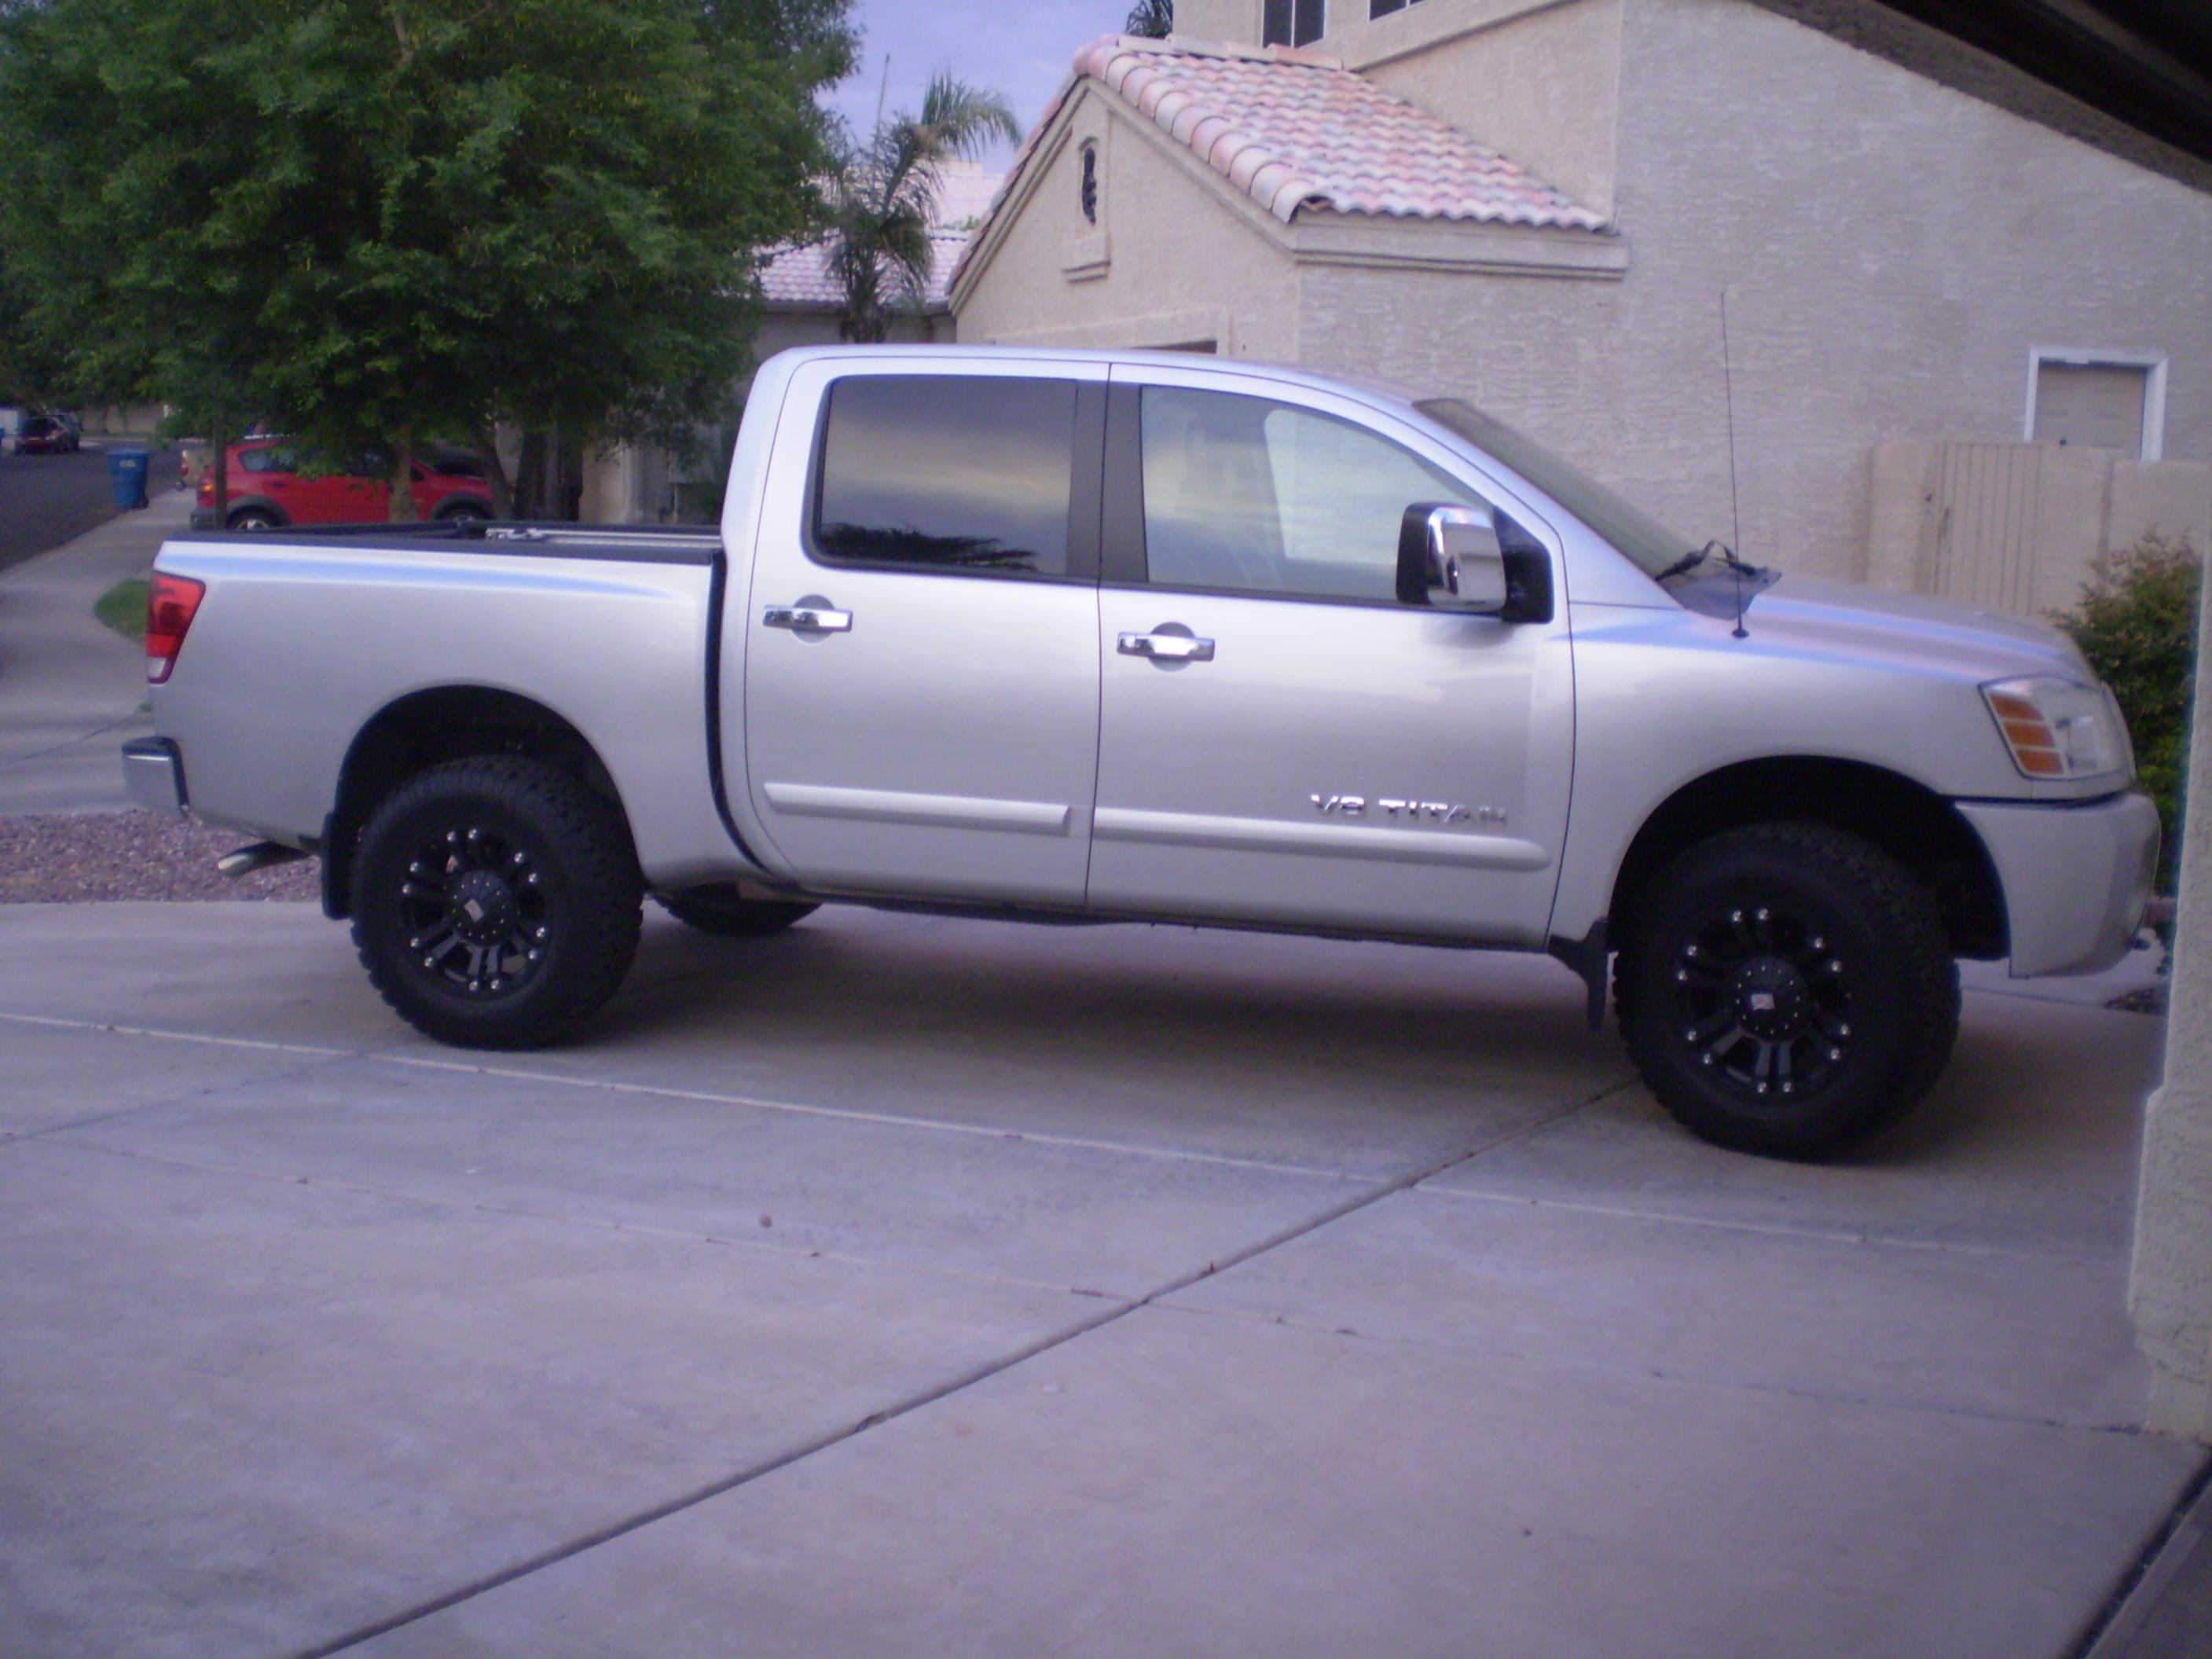 Best Mud Tire And Size After Front End Leveling Kit?